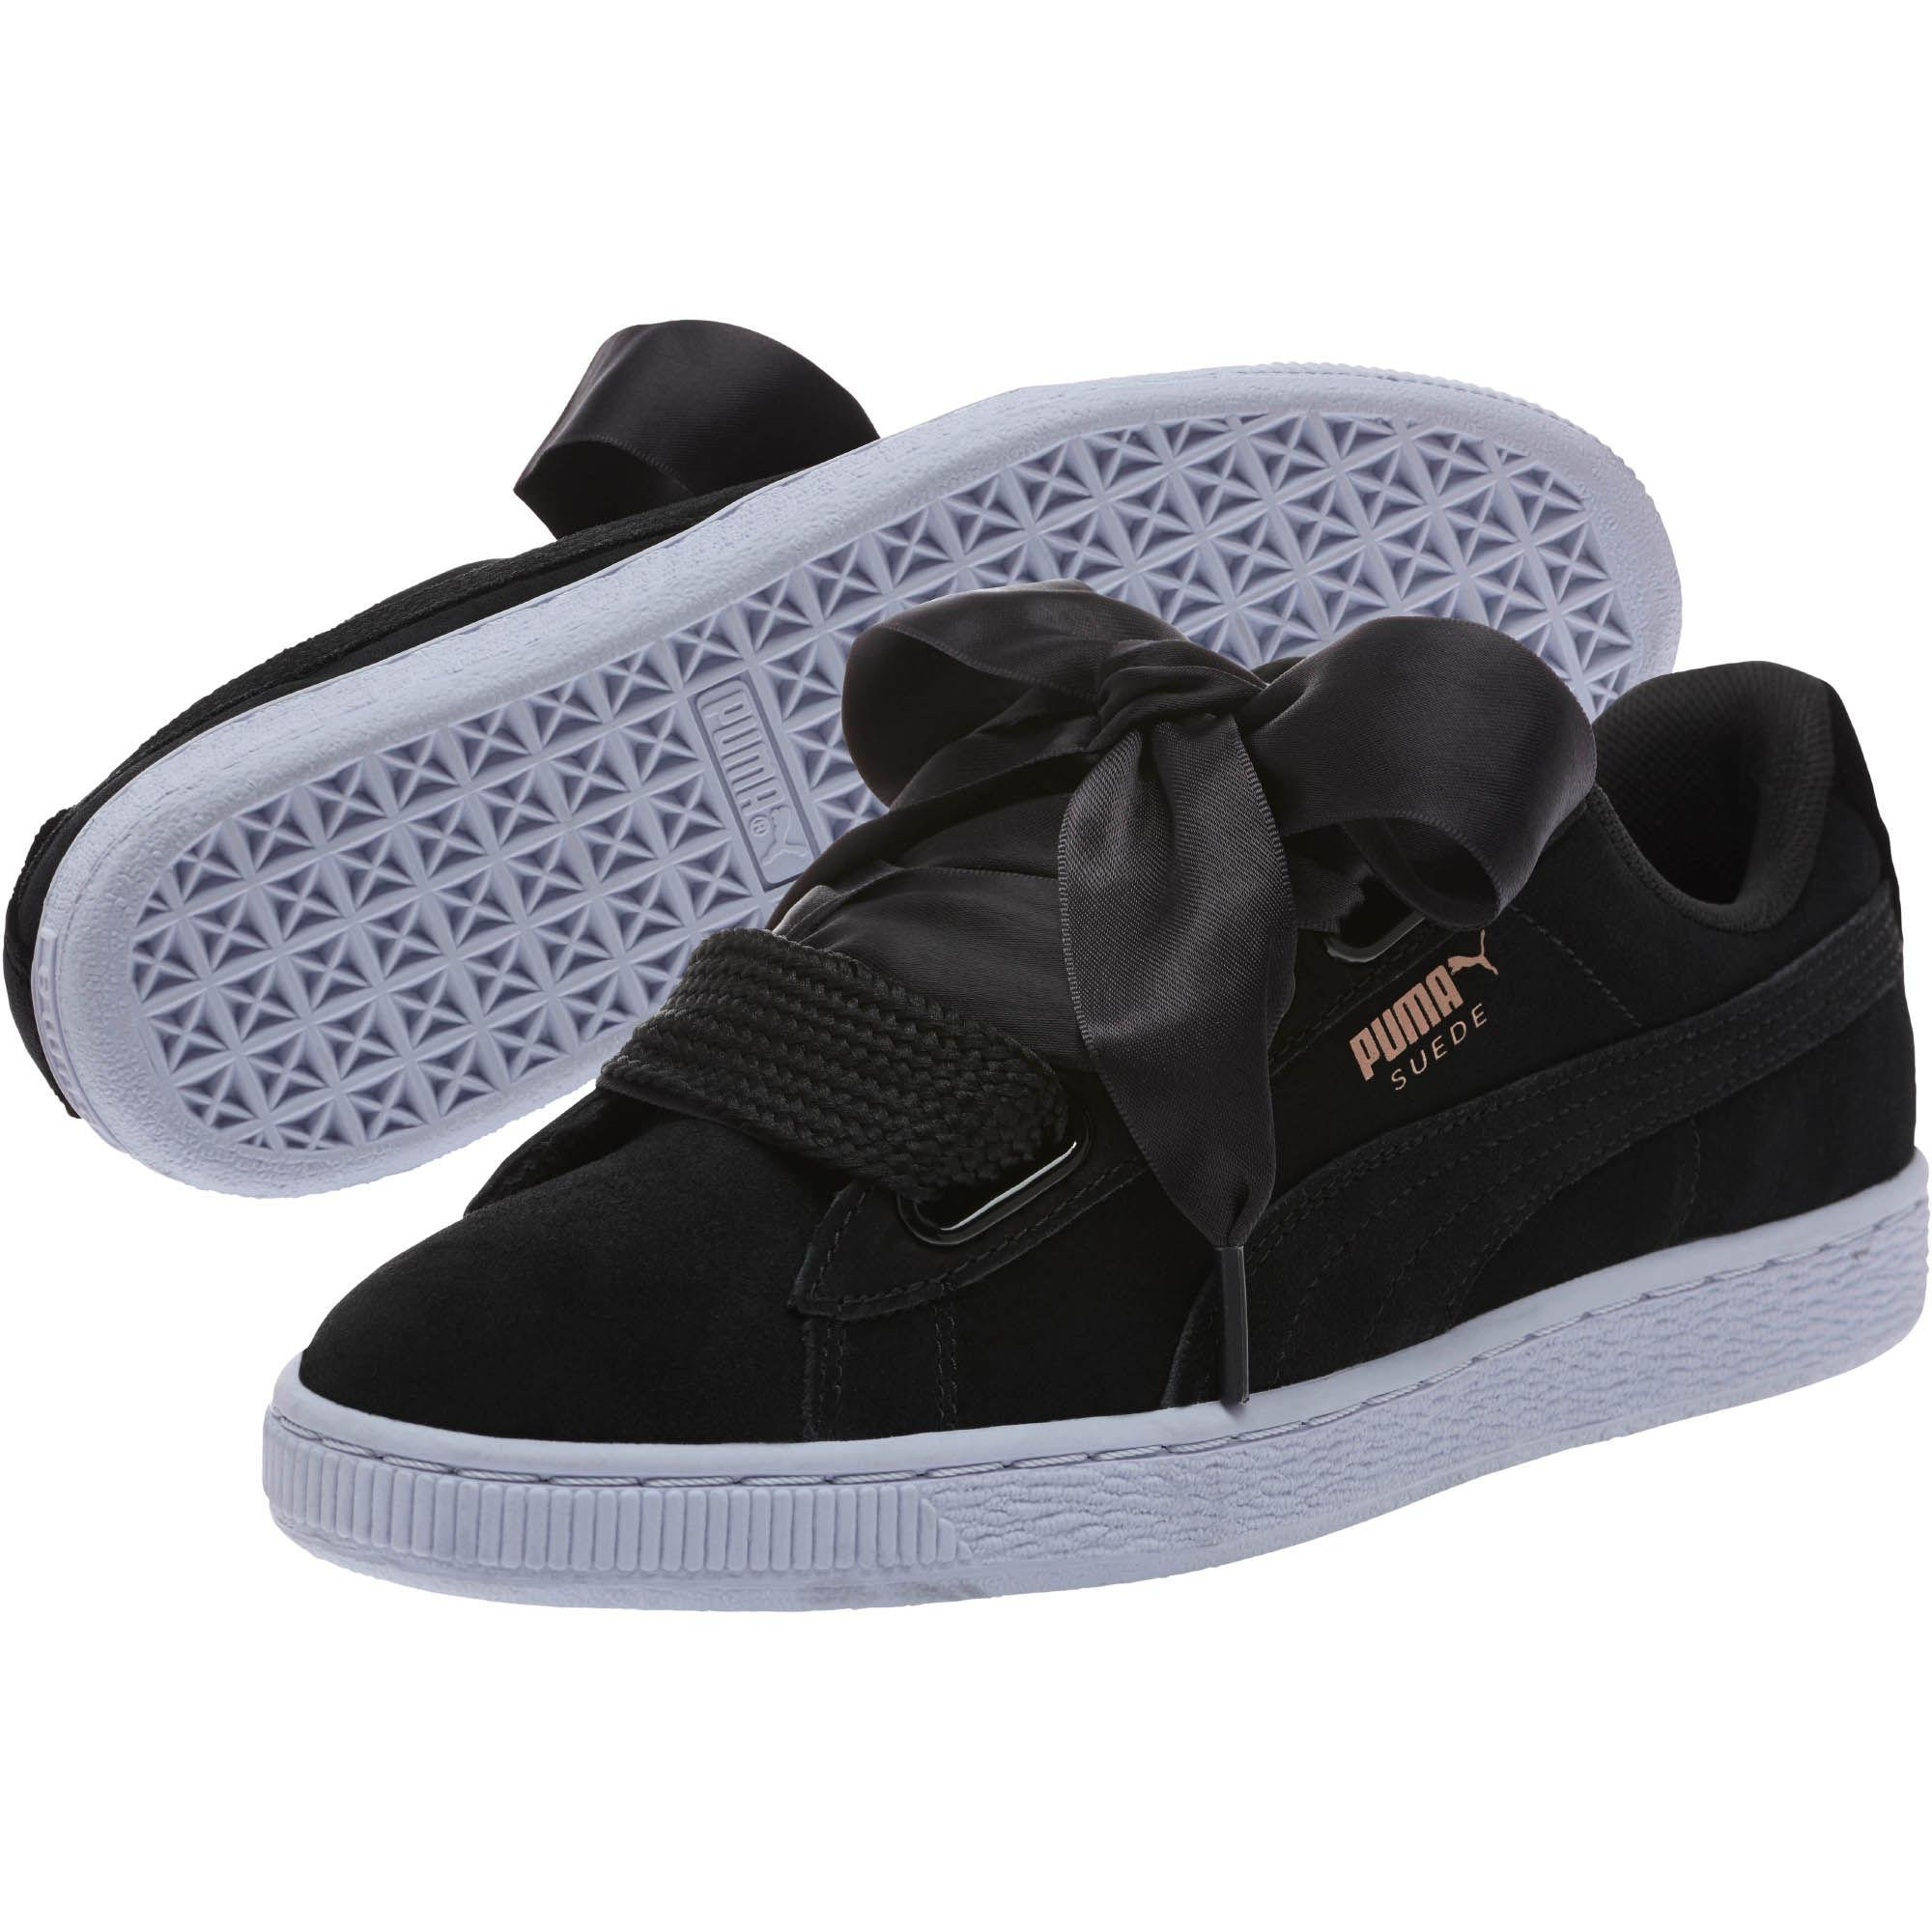 new products b2fb8 9afed Black Suede Heart Vr Women's Sneakers